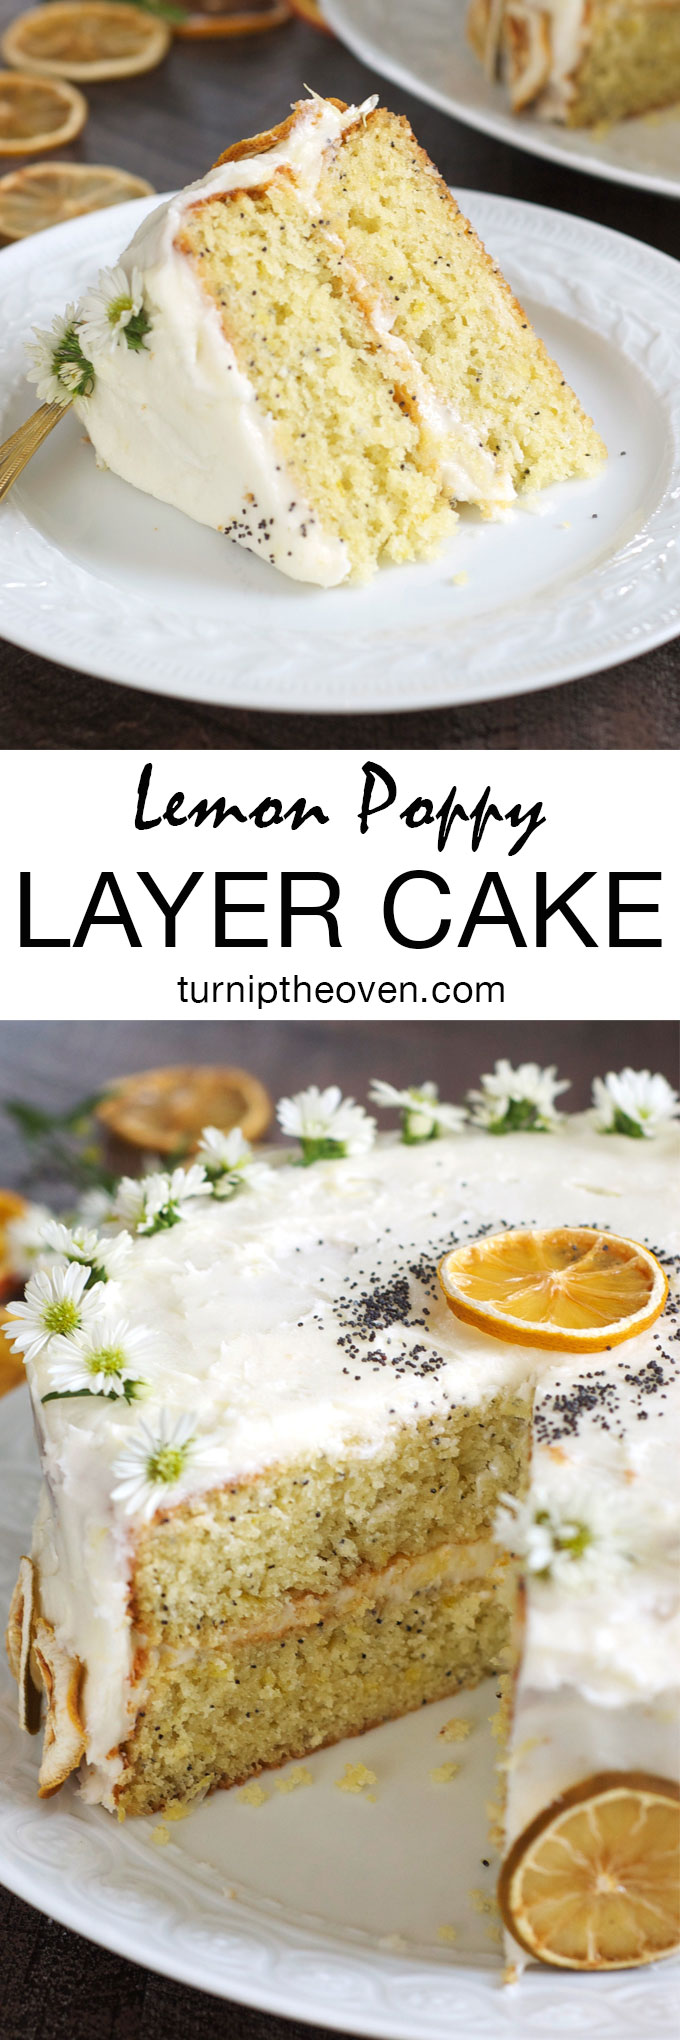 If you are a lemon lover, you will adore this bright, fresh lemon poppy layer cake topped with a cloud of sweet lemon buttercream frosting. This easy, straightforward recipe is perfect for any birthday or special occasion.